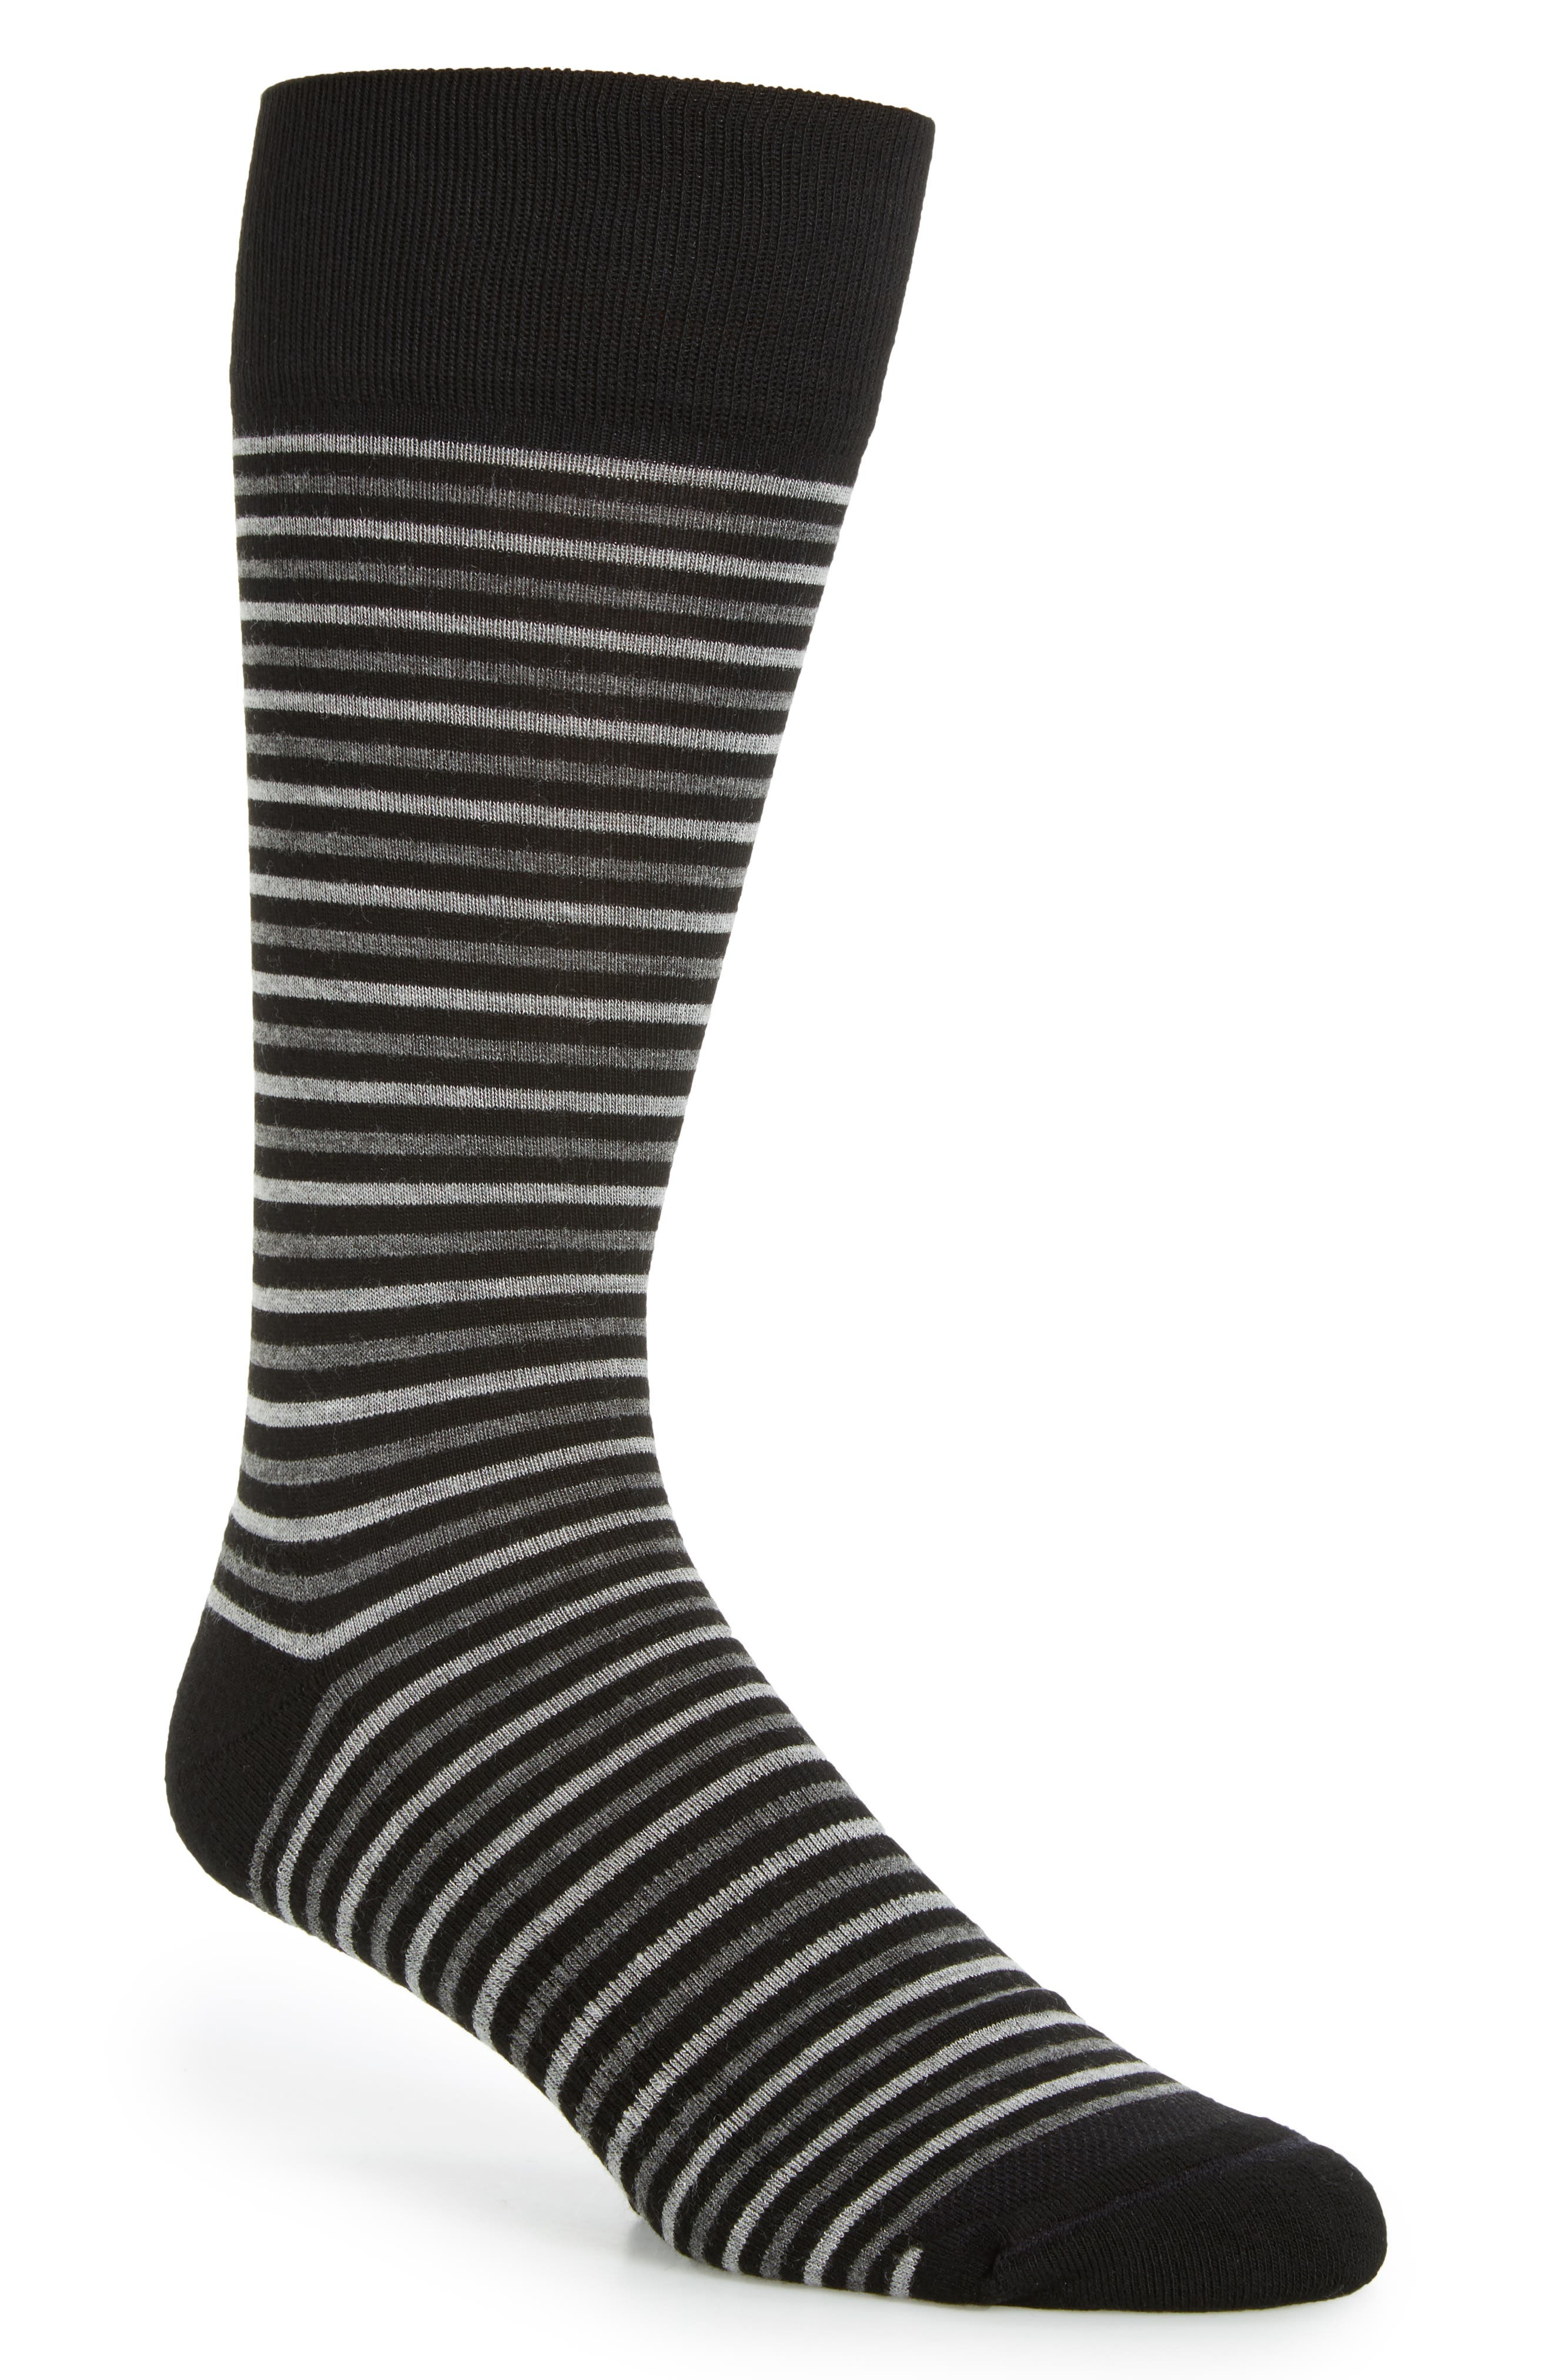 Stripe Socks,                             Main thumbnail 1, color,                             001